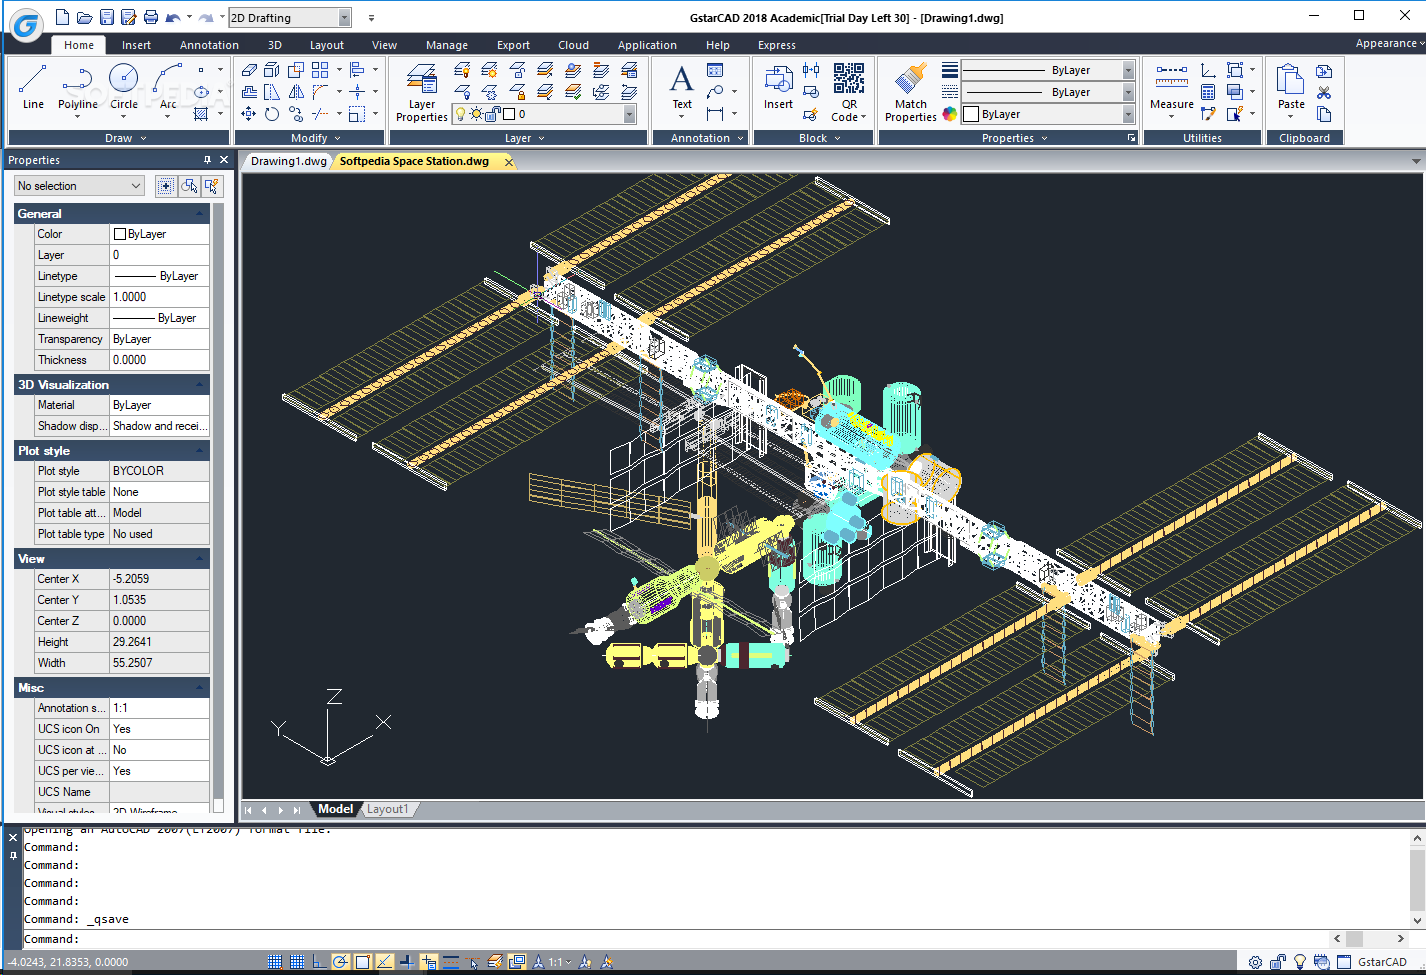 download The Healing